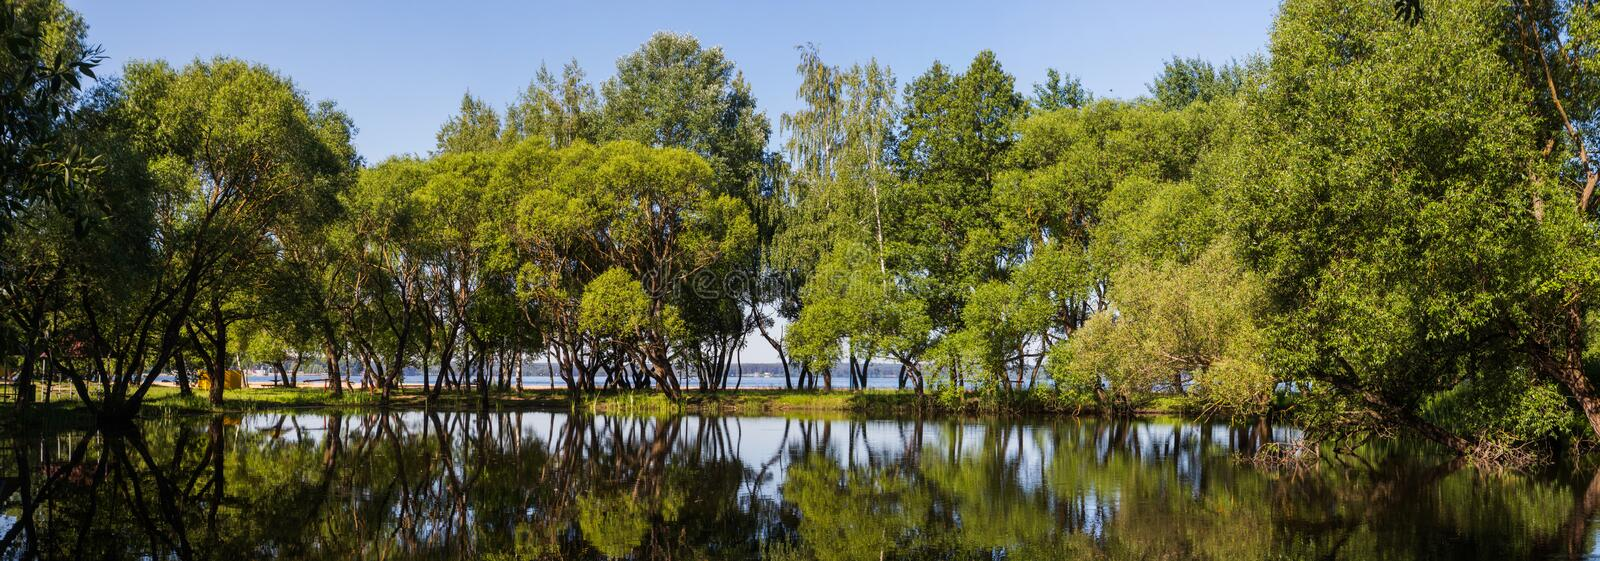 Landscape, bright day. Trees, water, bright sky royalty free stock image